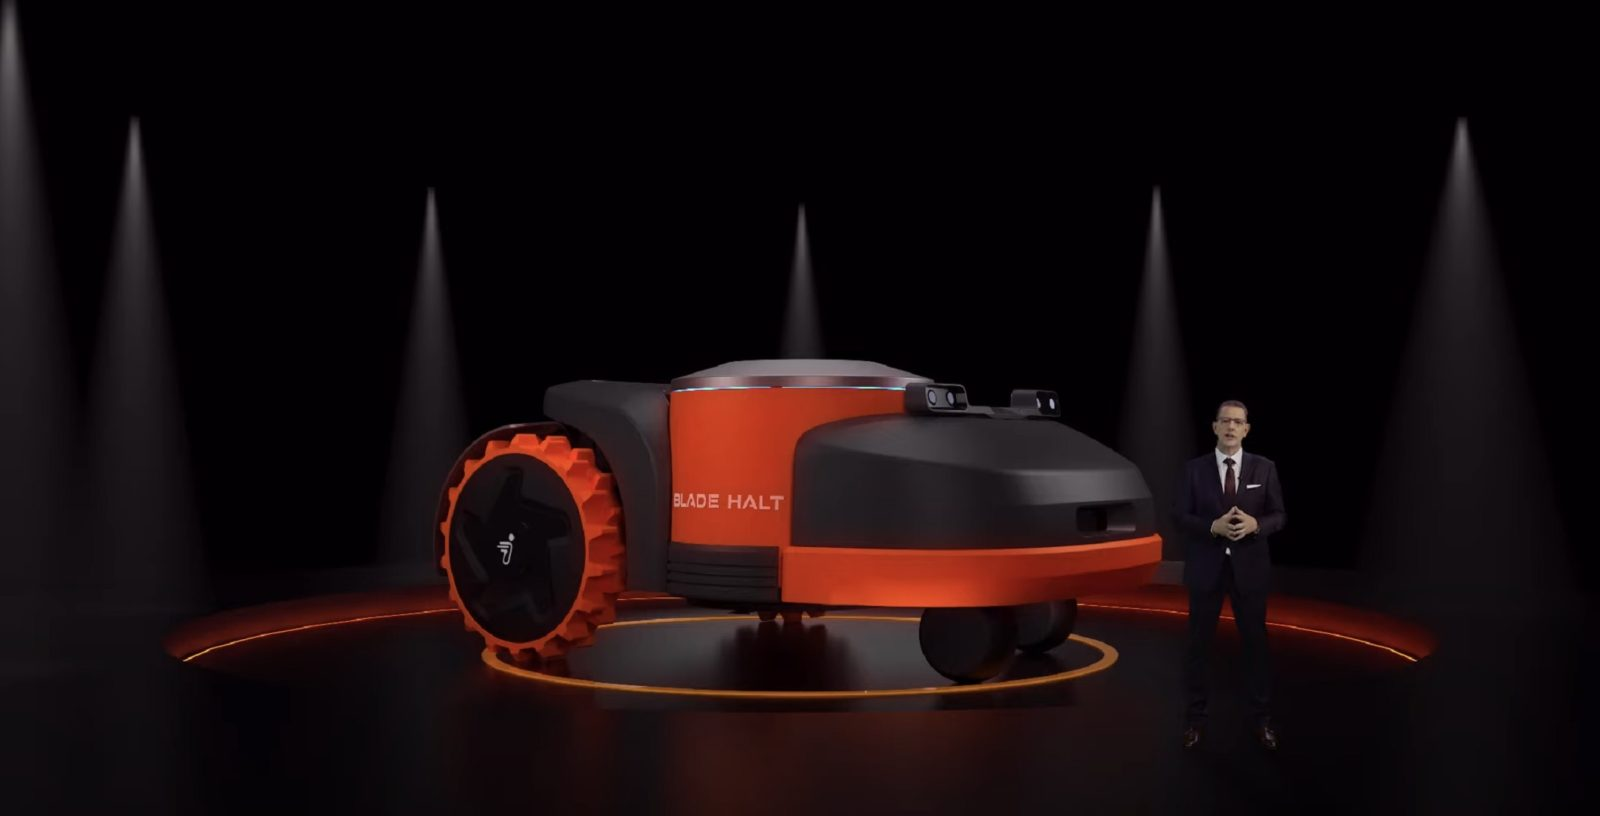 segway's-first-autonomous-robotic-lawn-mower-is-as-quiet-as-your-electric-toothbrush